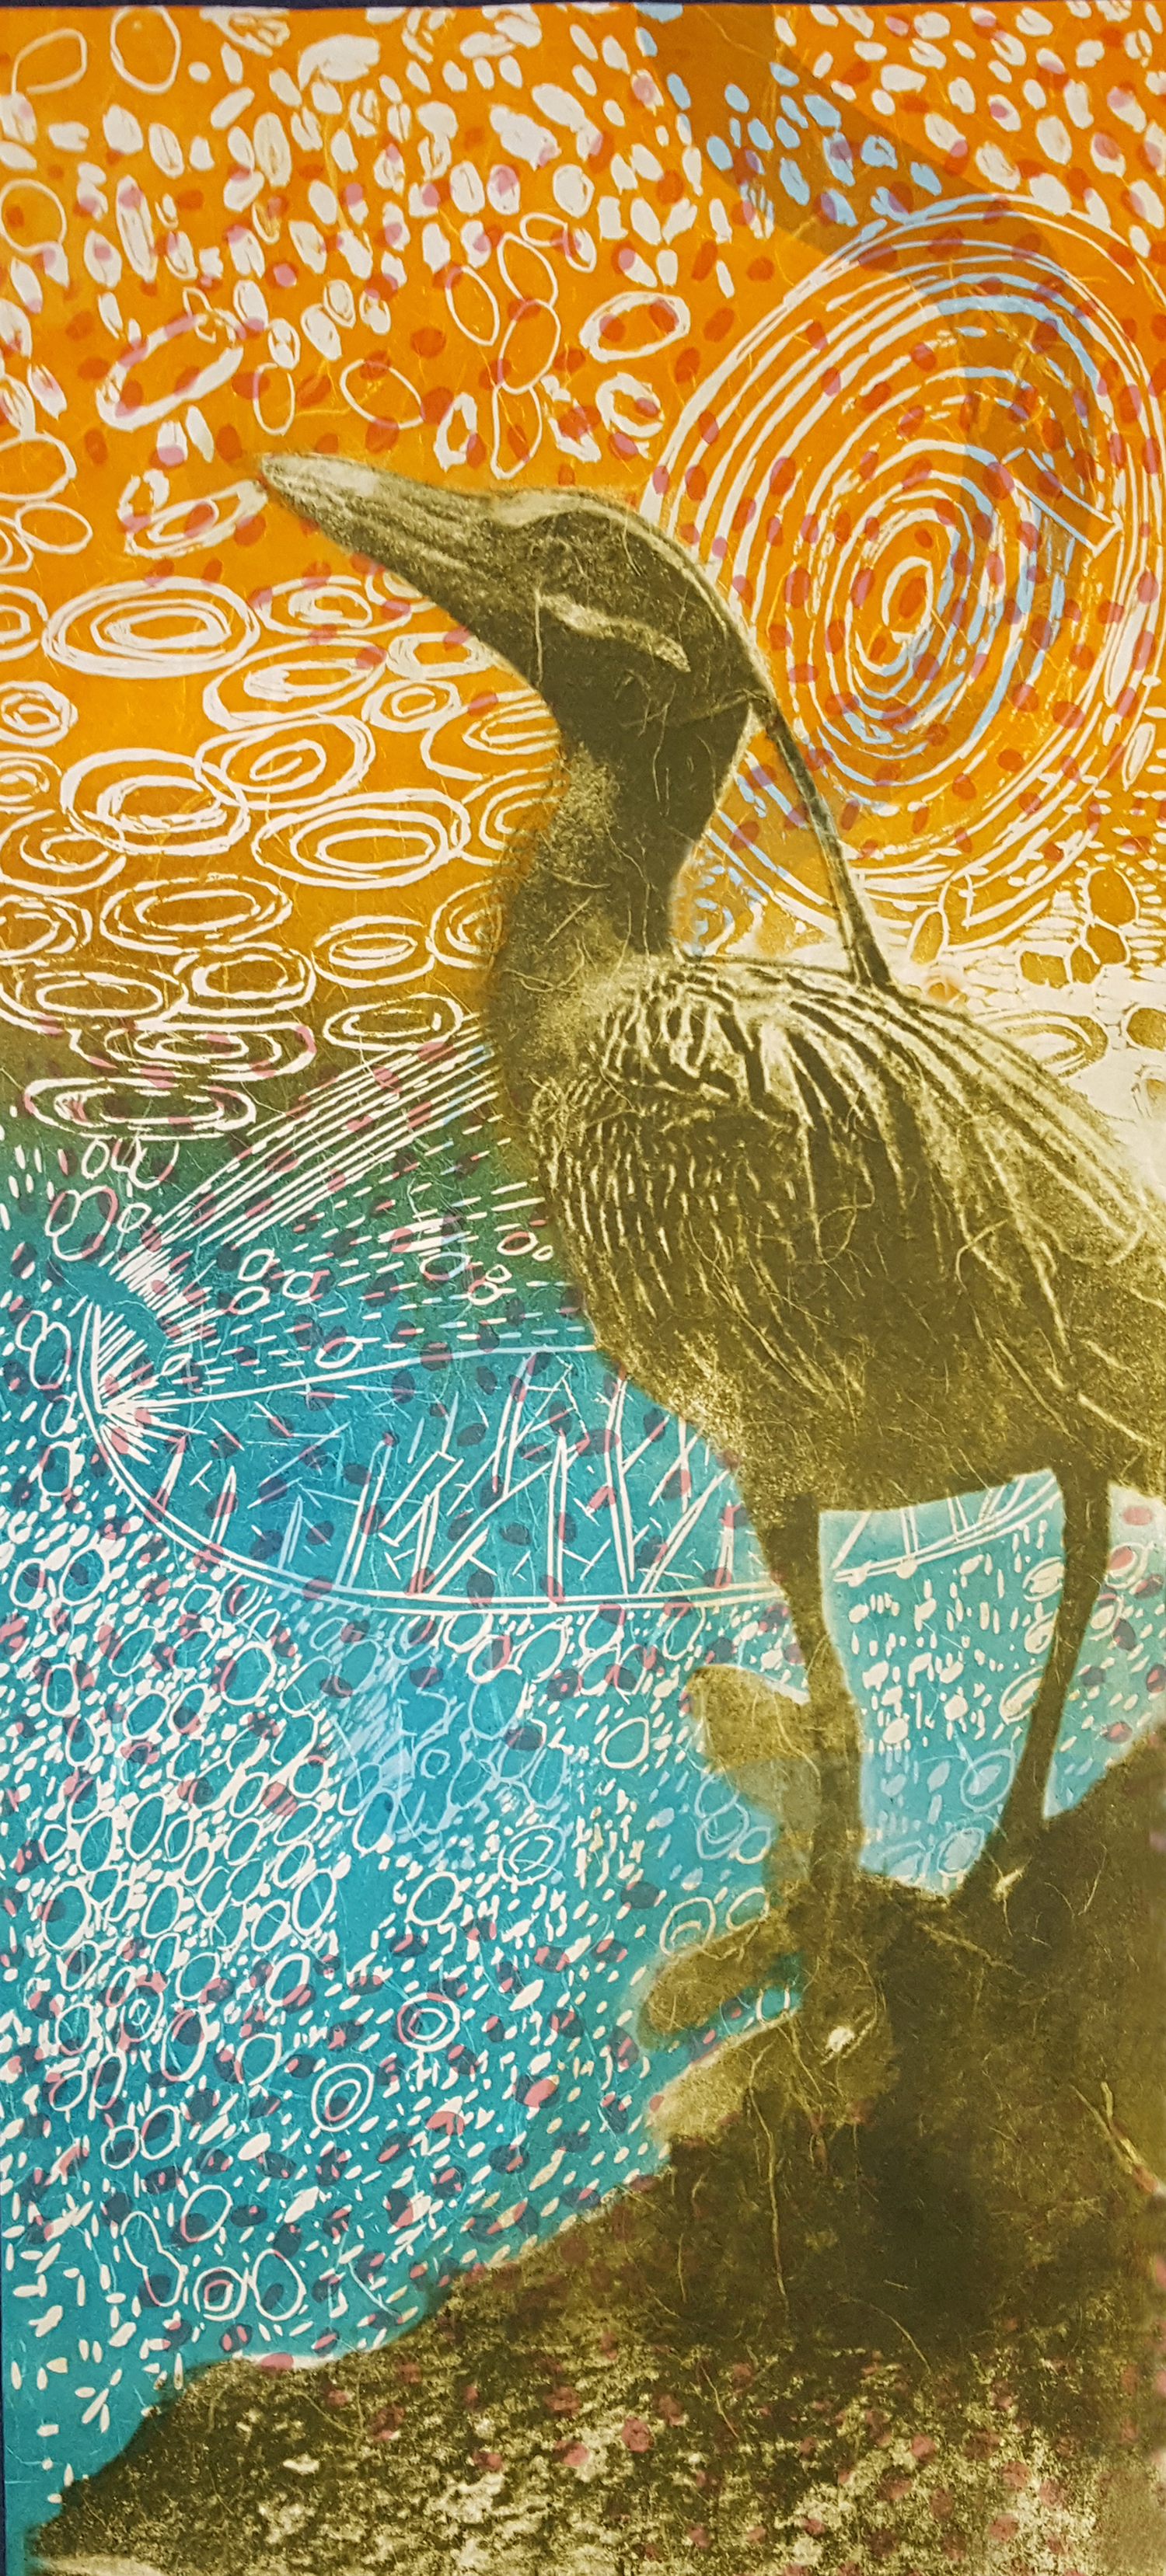 Crested Night Heron, 10 ¼ x 23 ¾ inches, Woodcut, Paper Lithography, Screenprint, Color Pencil, Japanese paper, 2017